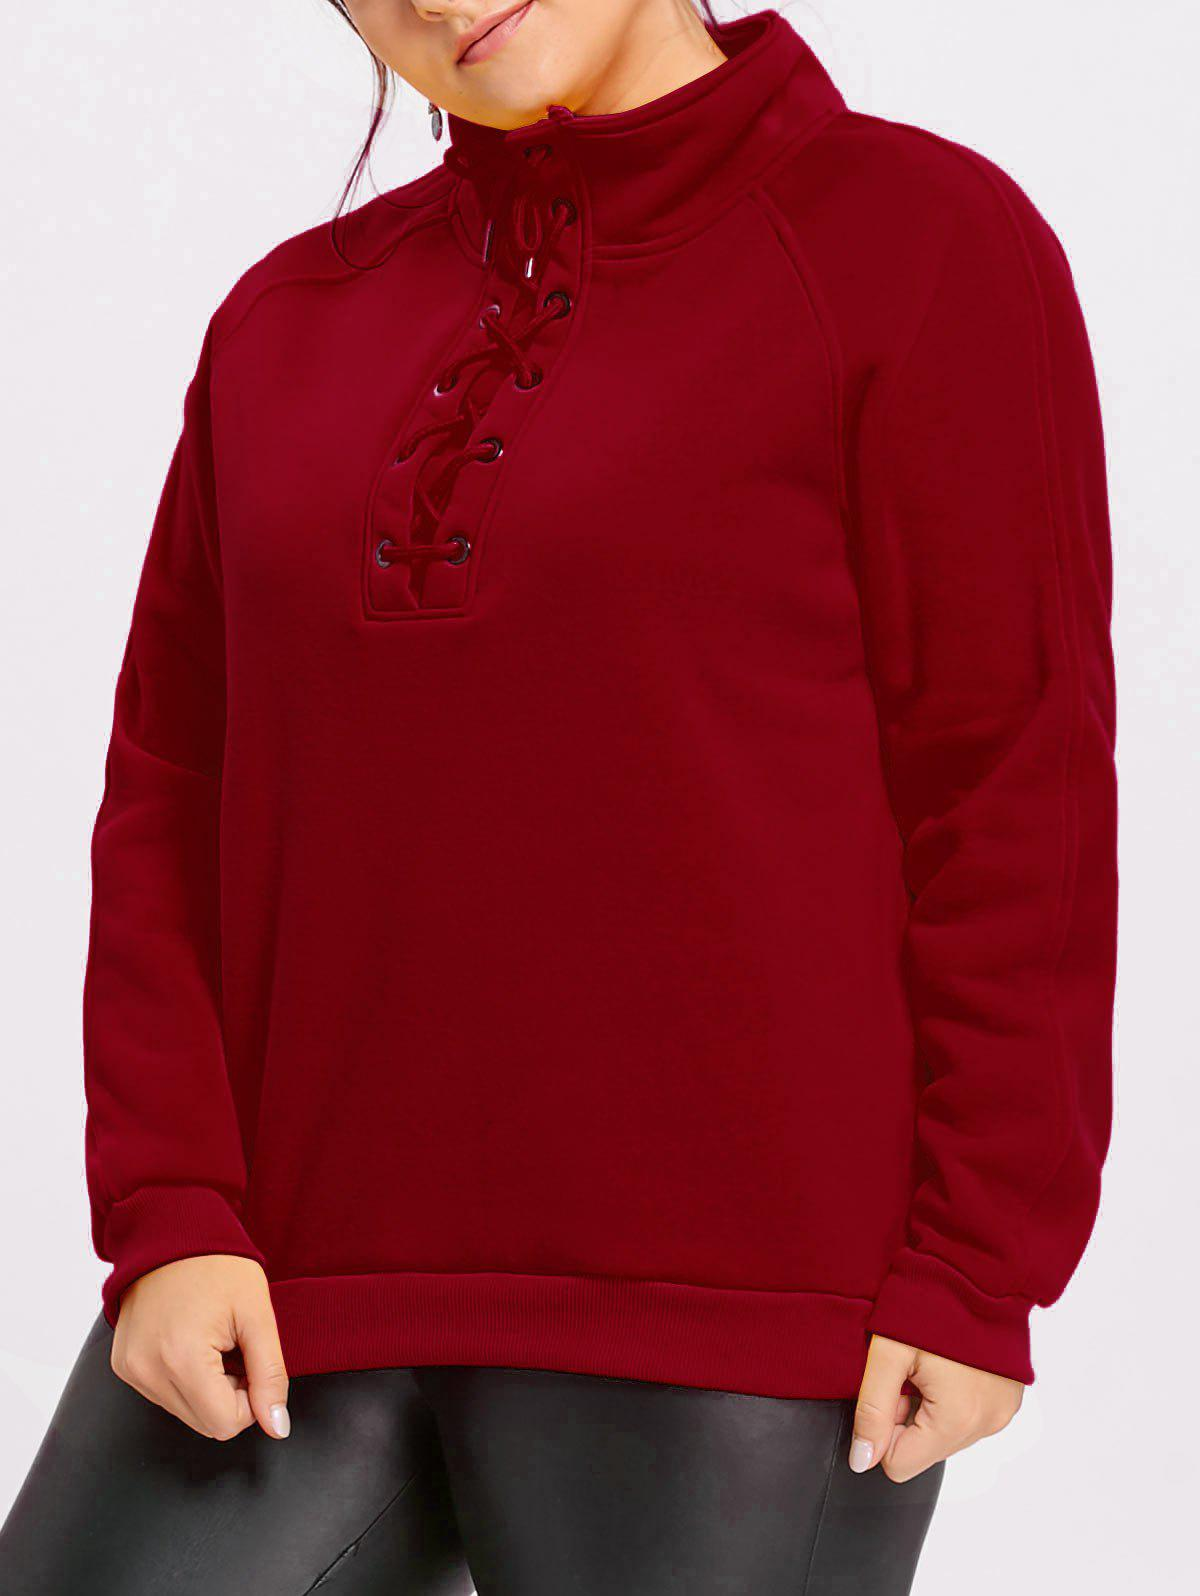 High Neck Plus Size Fleece Lined Lace Up Sweatshirt - DEEP RED XL